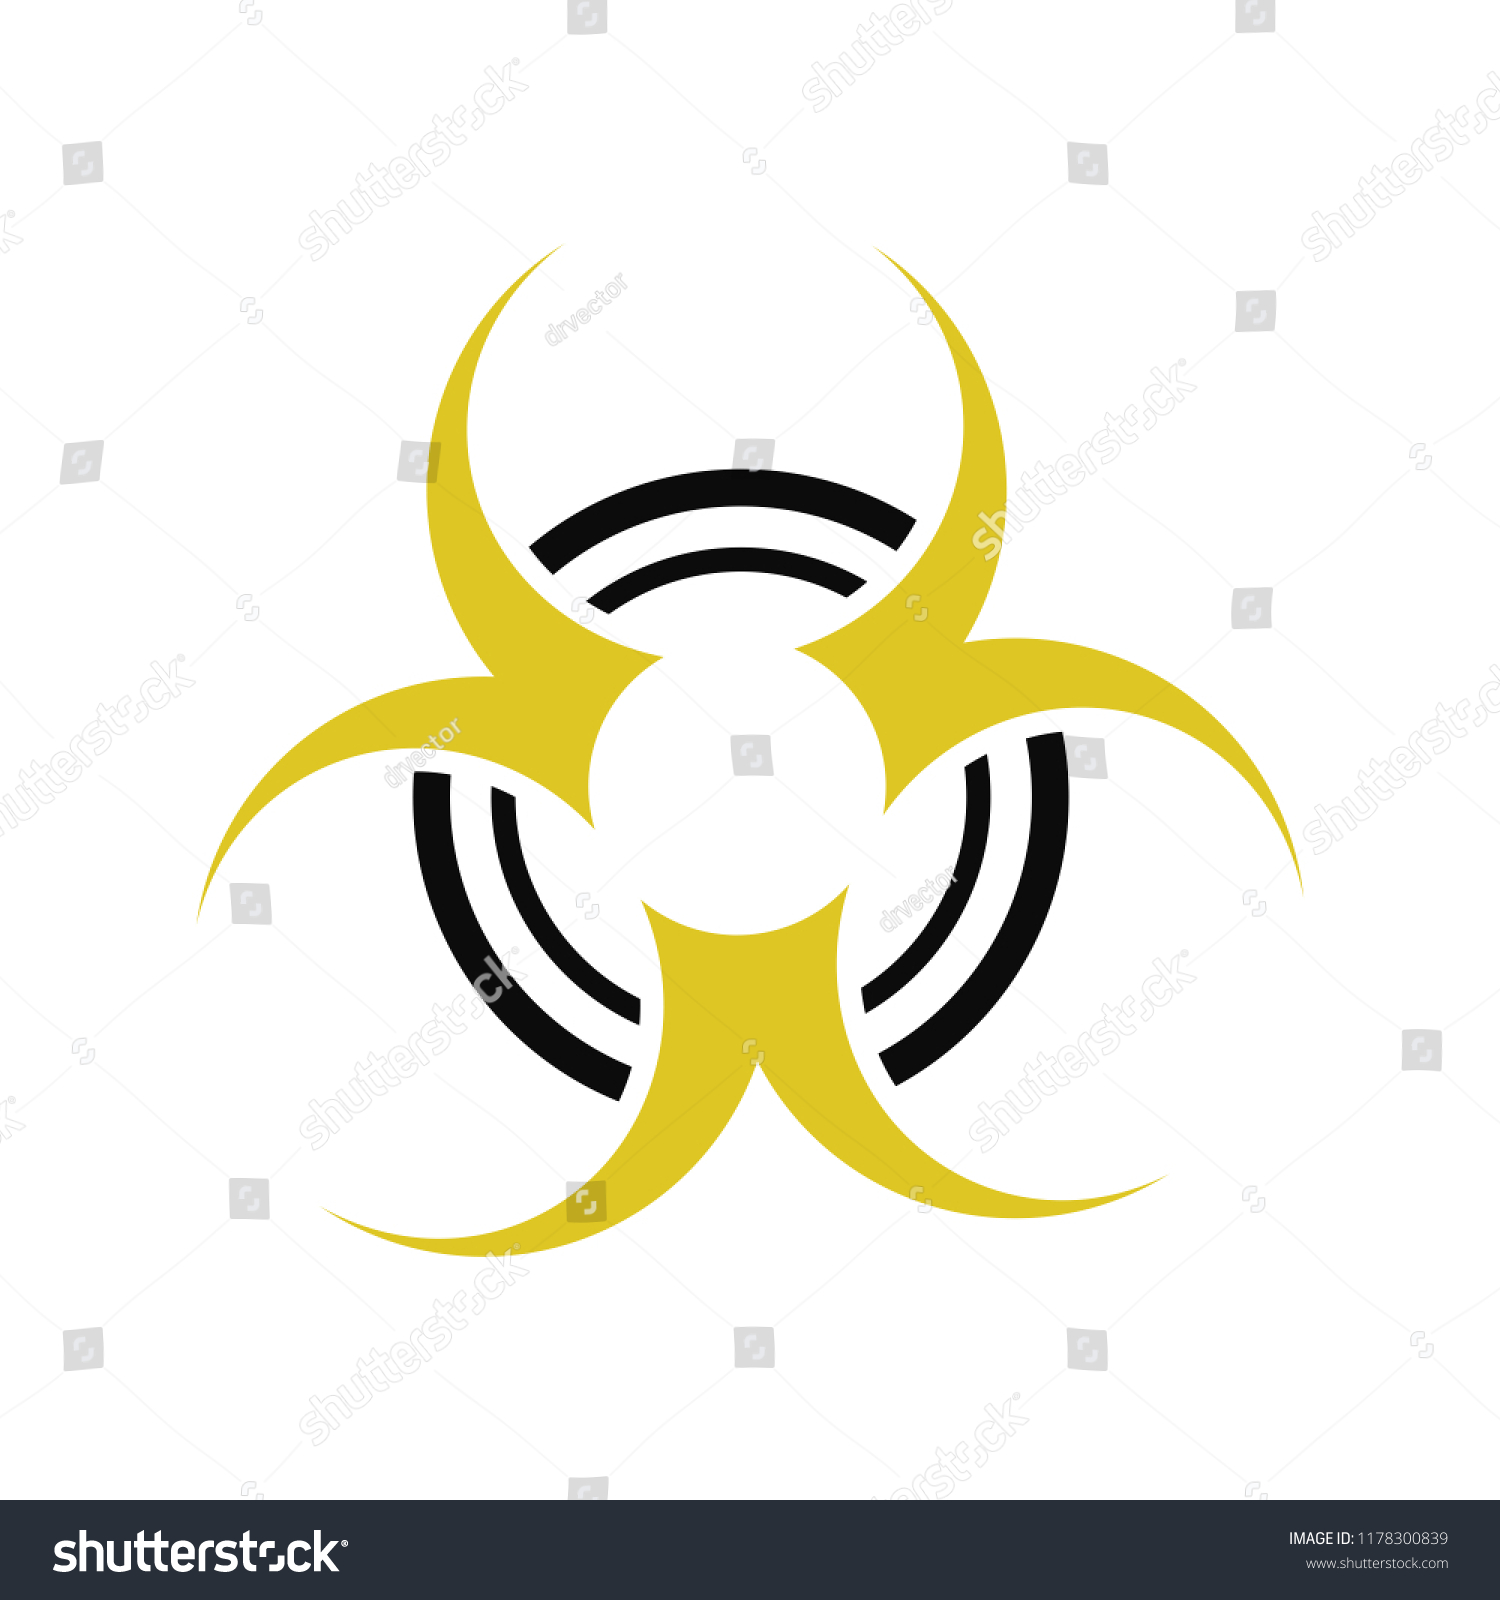 hazard icon dangerous symbol - biohazard symbol symbol - danger sign #1178300839